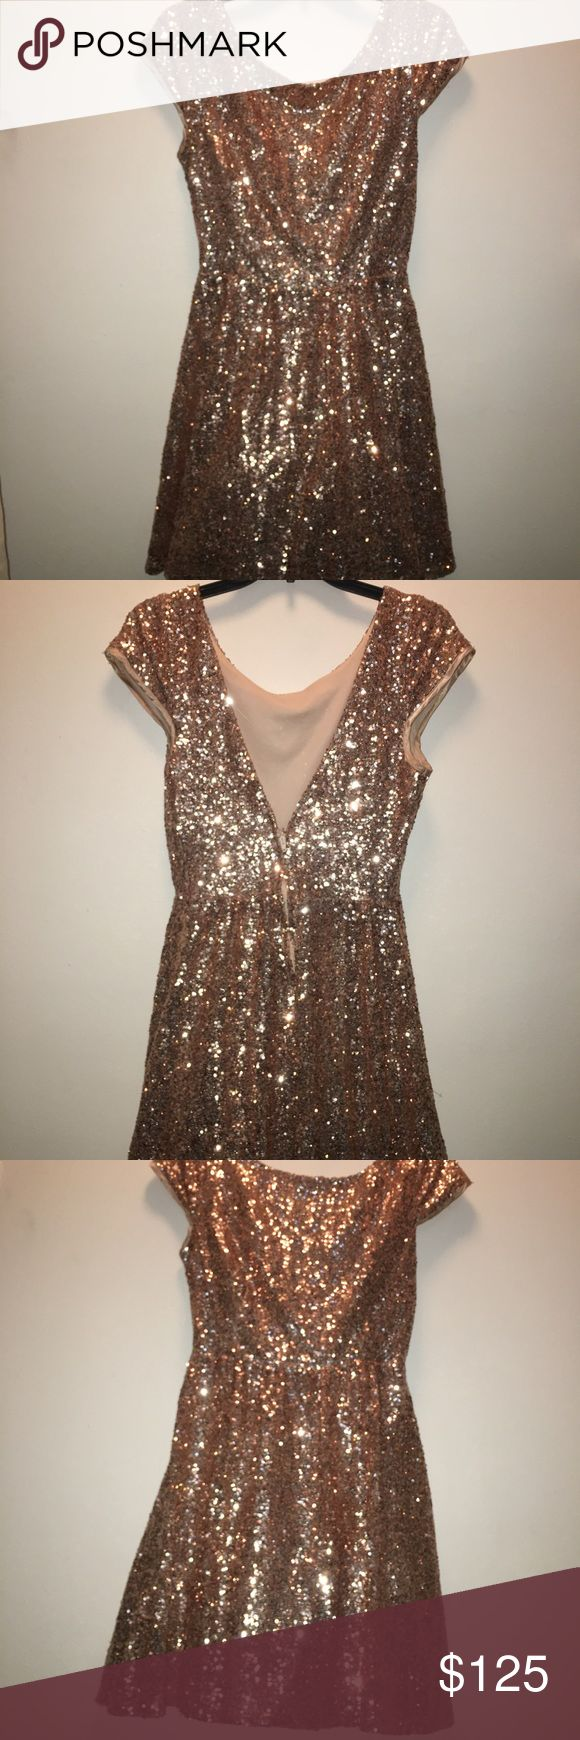 WINDSOR SEQUIN HOLIDAY DRESS! 13/14 Beautiful Windsor holiday dress worn once perfect Condition, low back, don't miss this beauty! It won't last! Hook back zip closure! Imported fabric from New Mexico! Windsor Dresses Prom